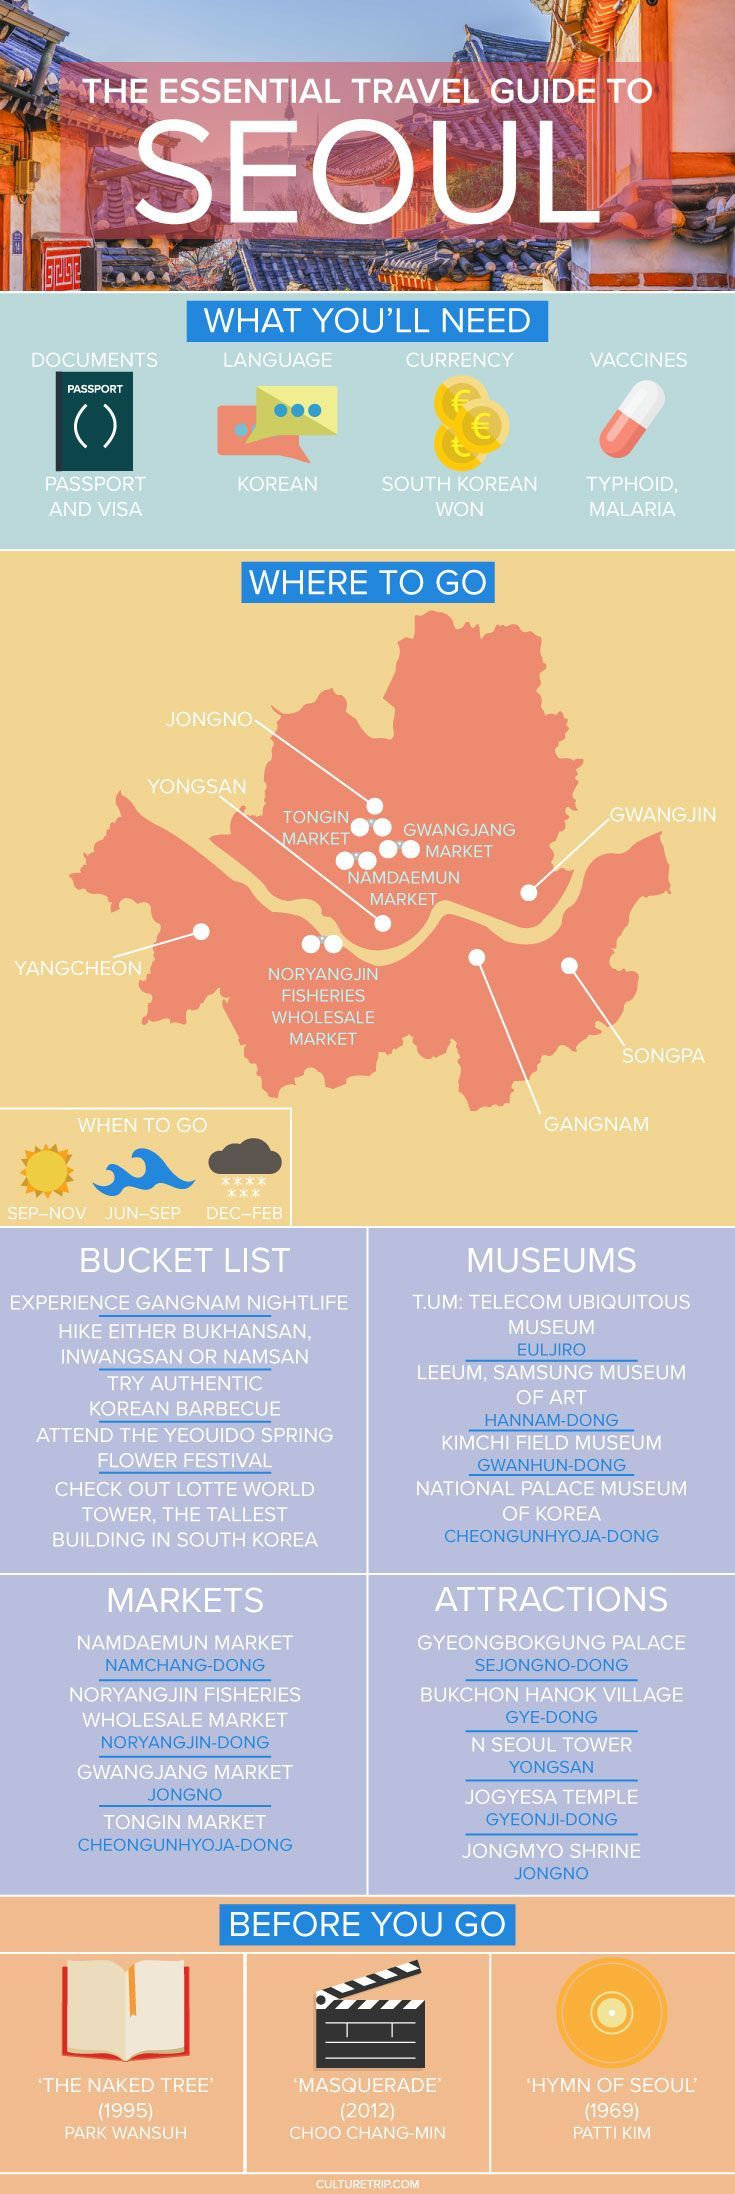 The Essential Travel Guide to Seoul (Infographic)|Pinterest: @theculturetrip